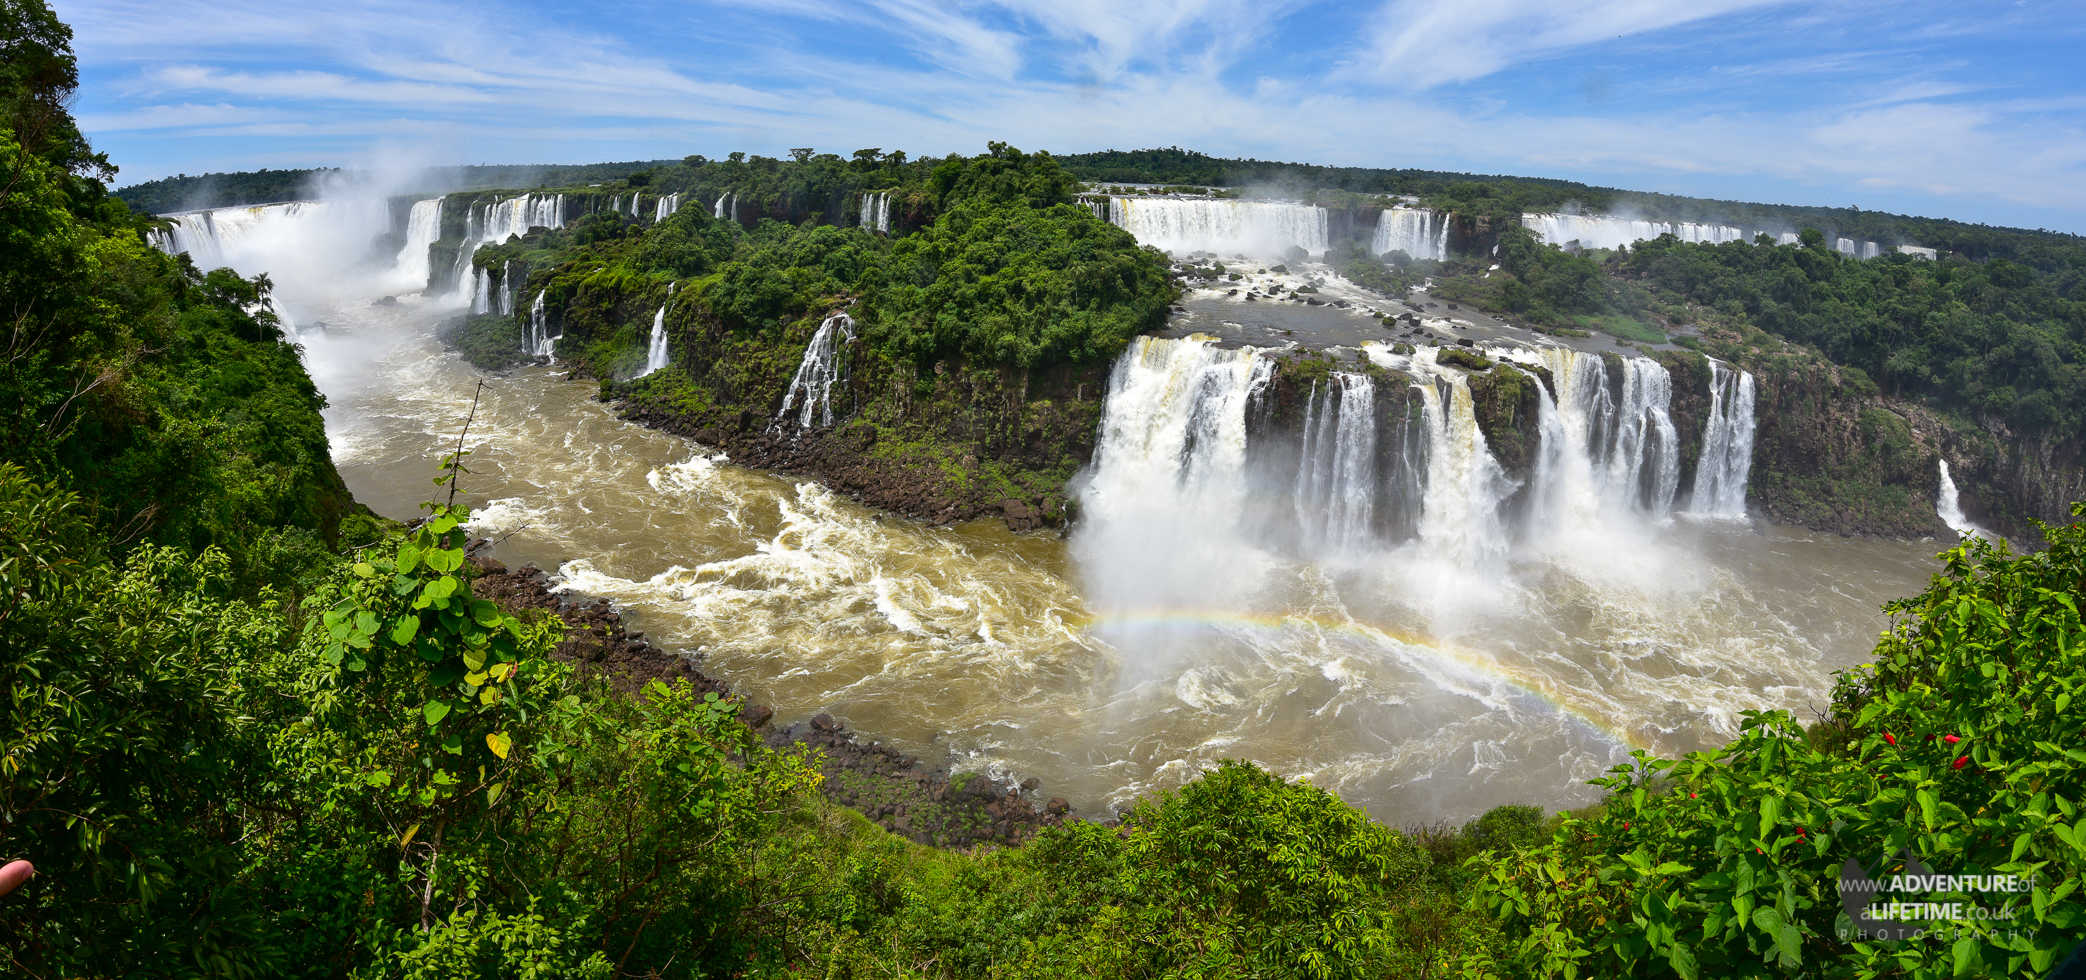 Cataratas Del Iguazu from Brazil